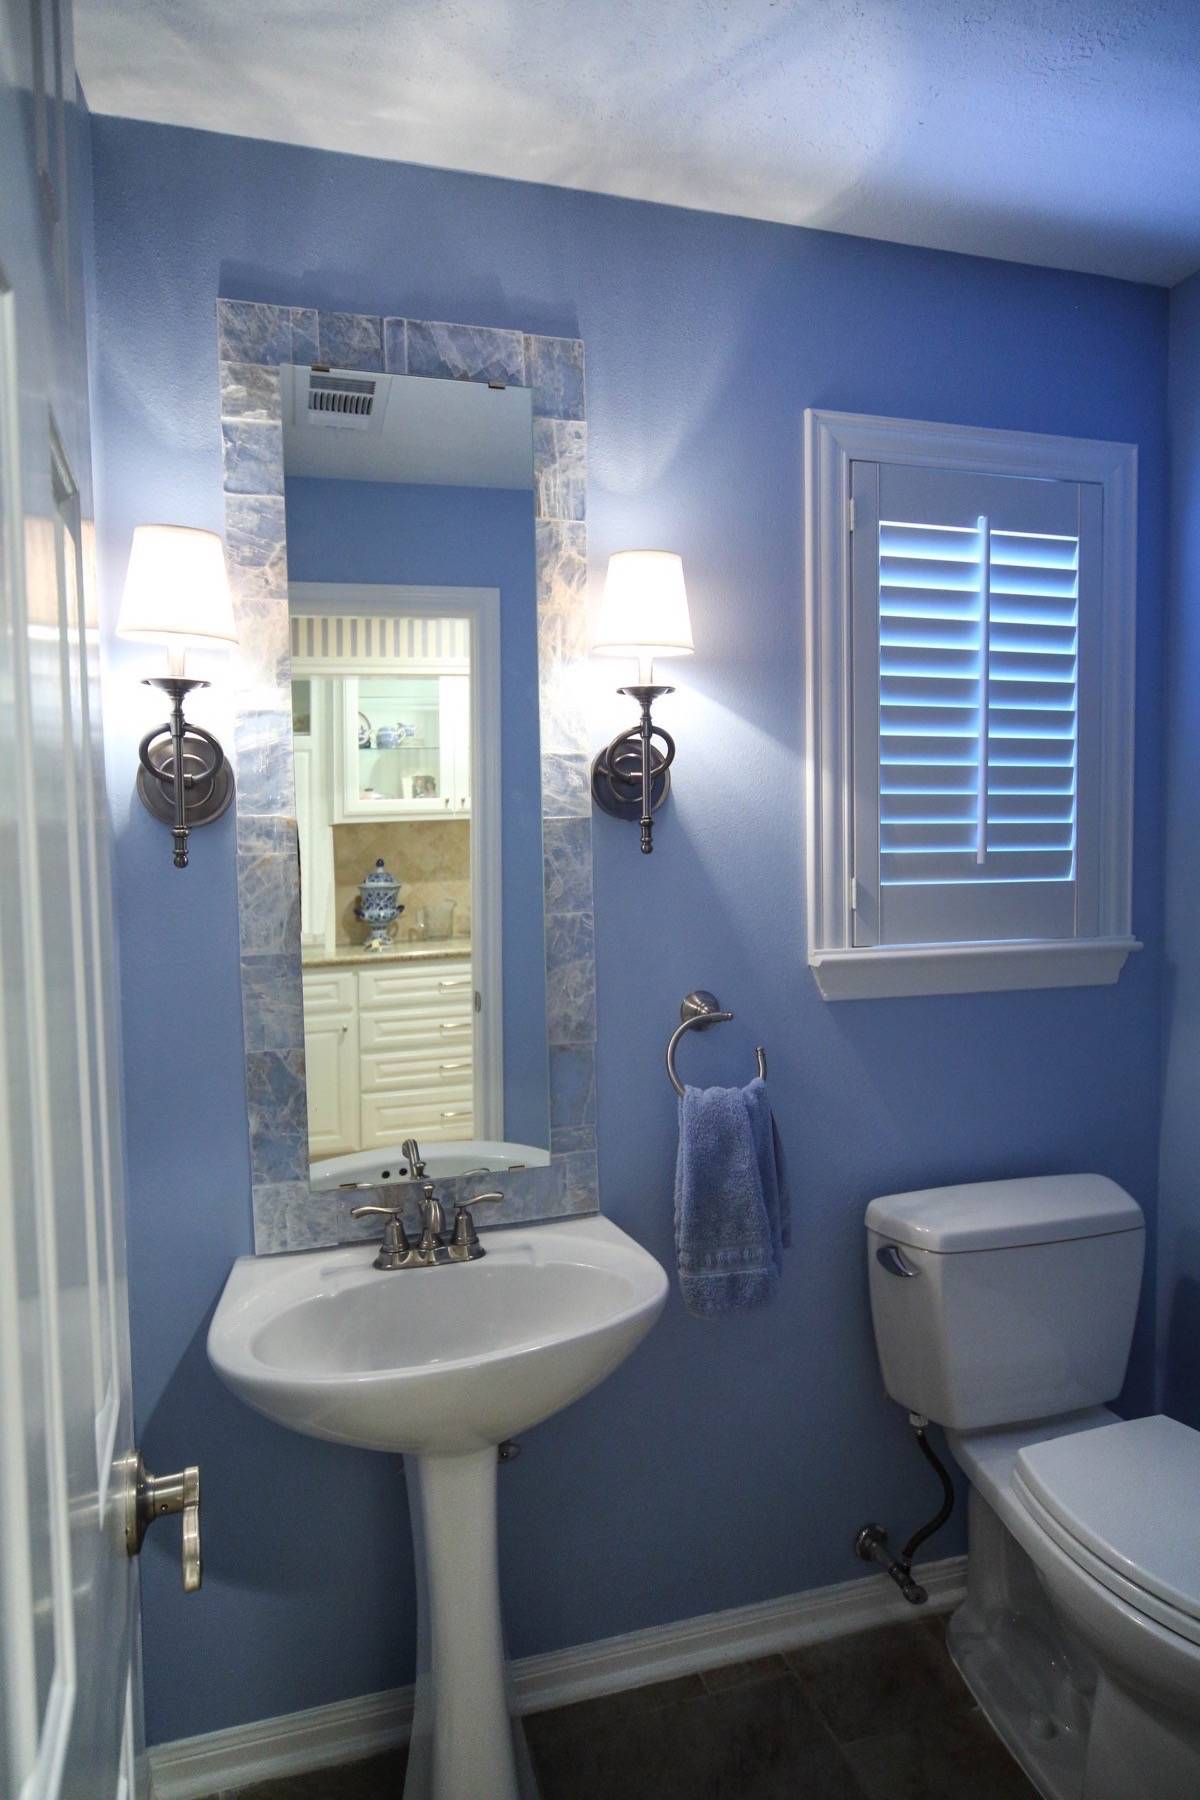 grand windows amp interiors provides custom kitchen amp bath services to fort bend county texas: architecture bathroom toilet